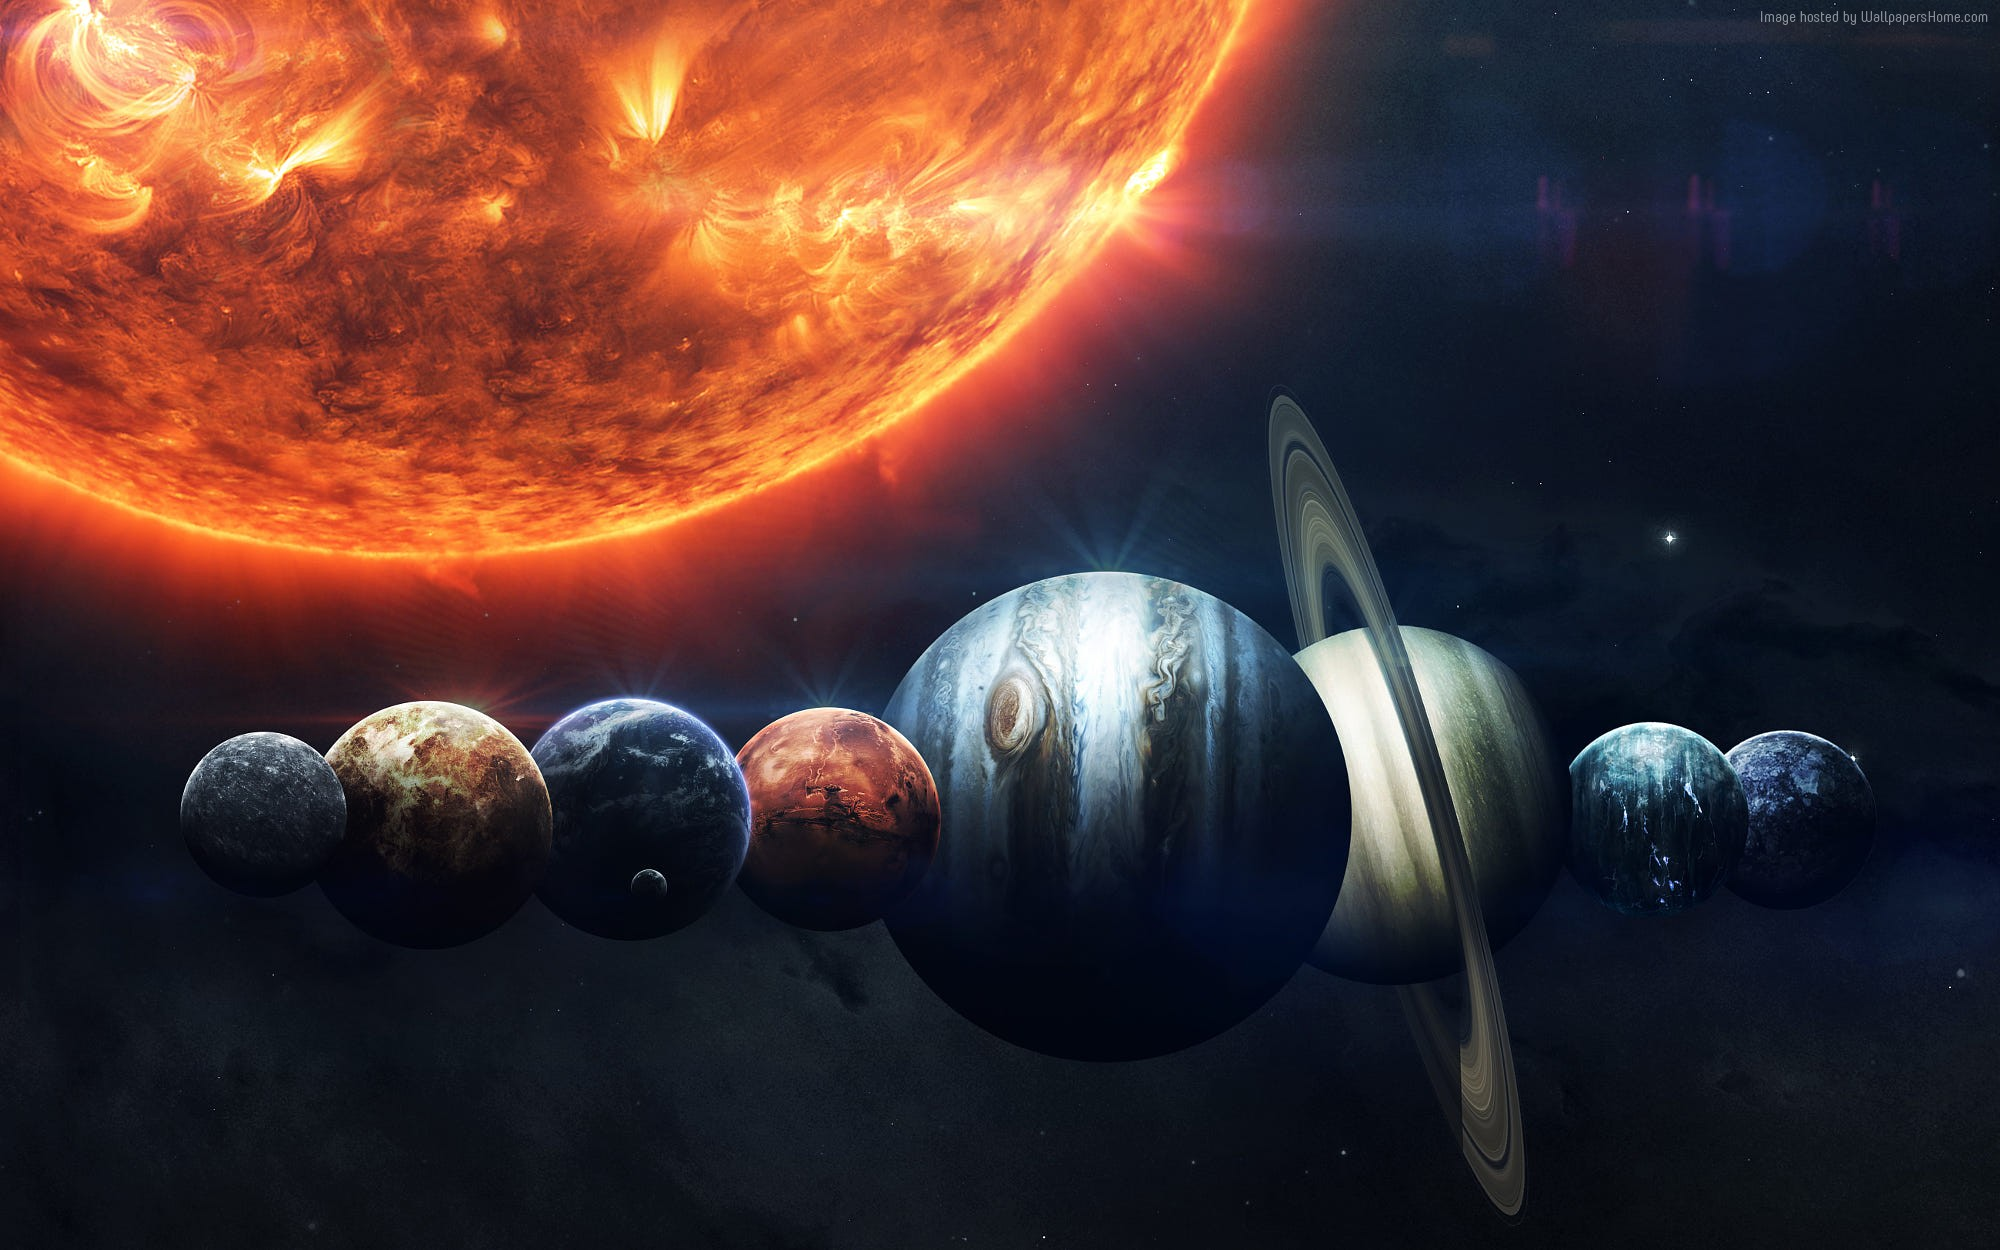 2000x1250 - Planets Wallpapers 2